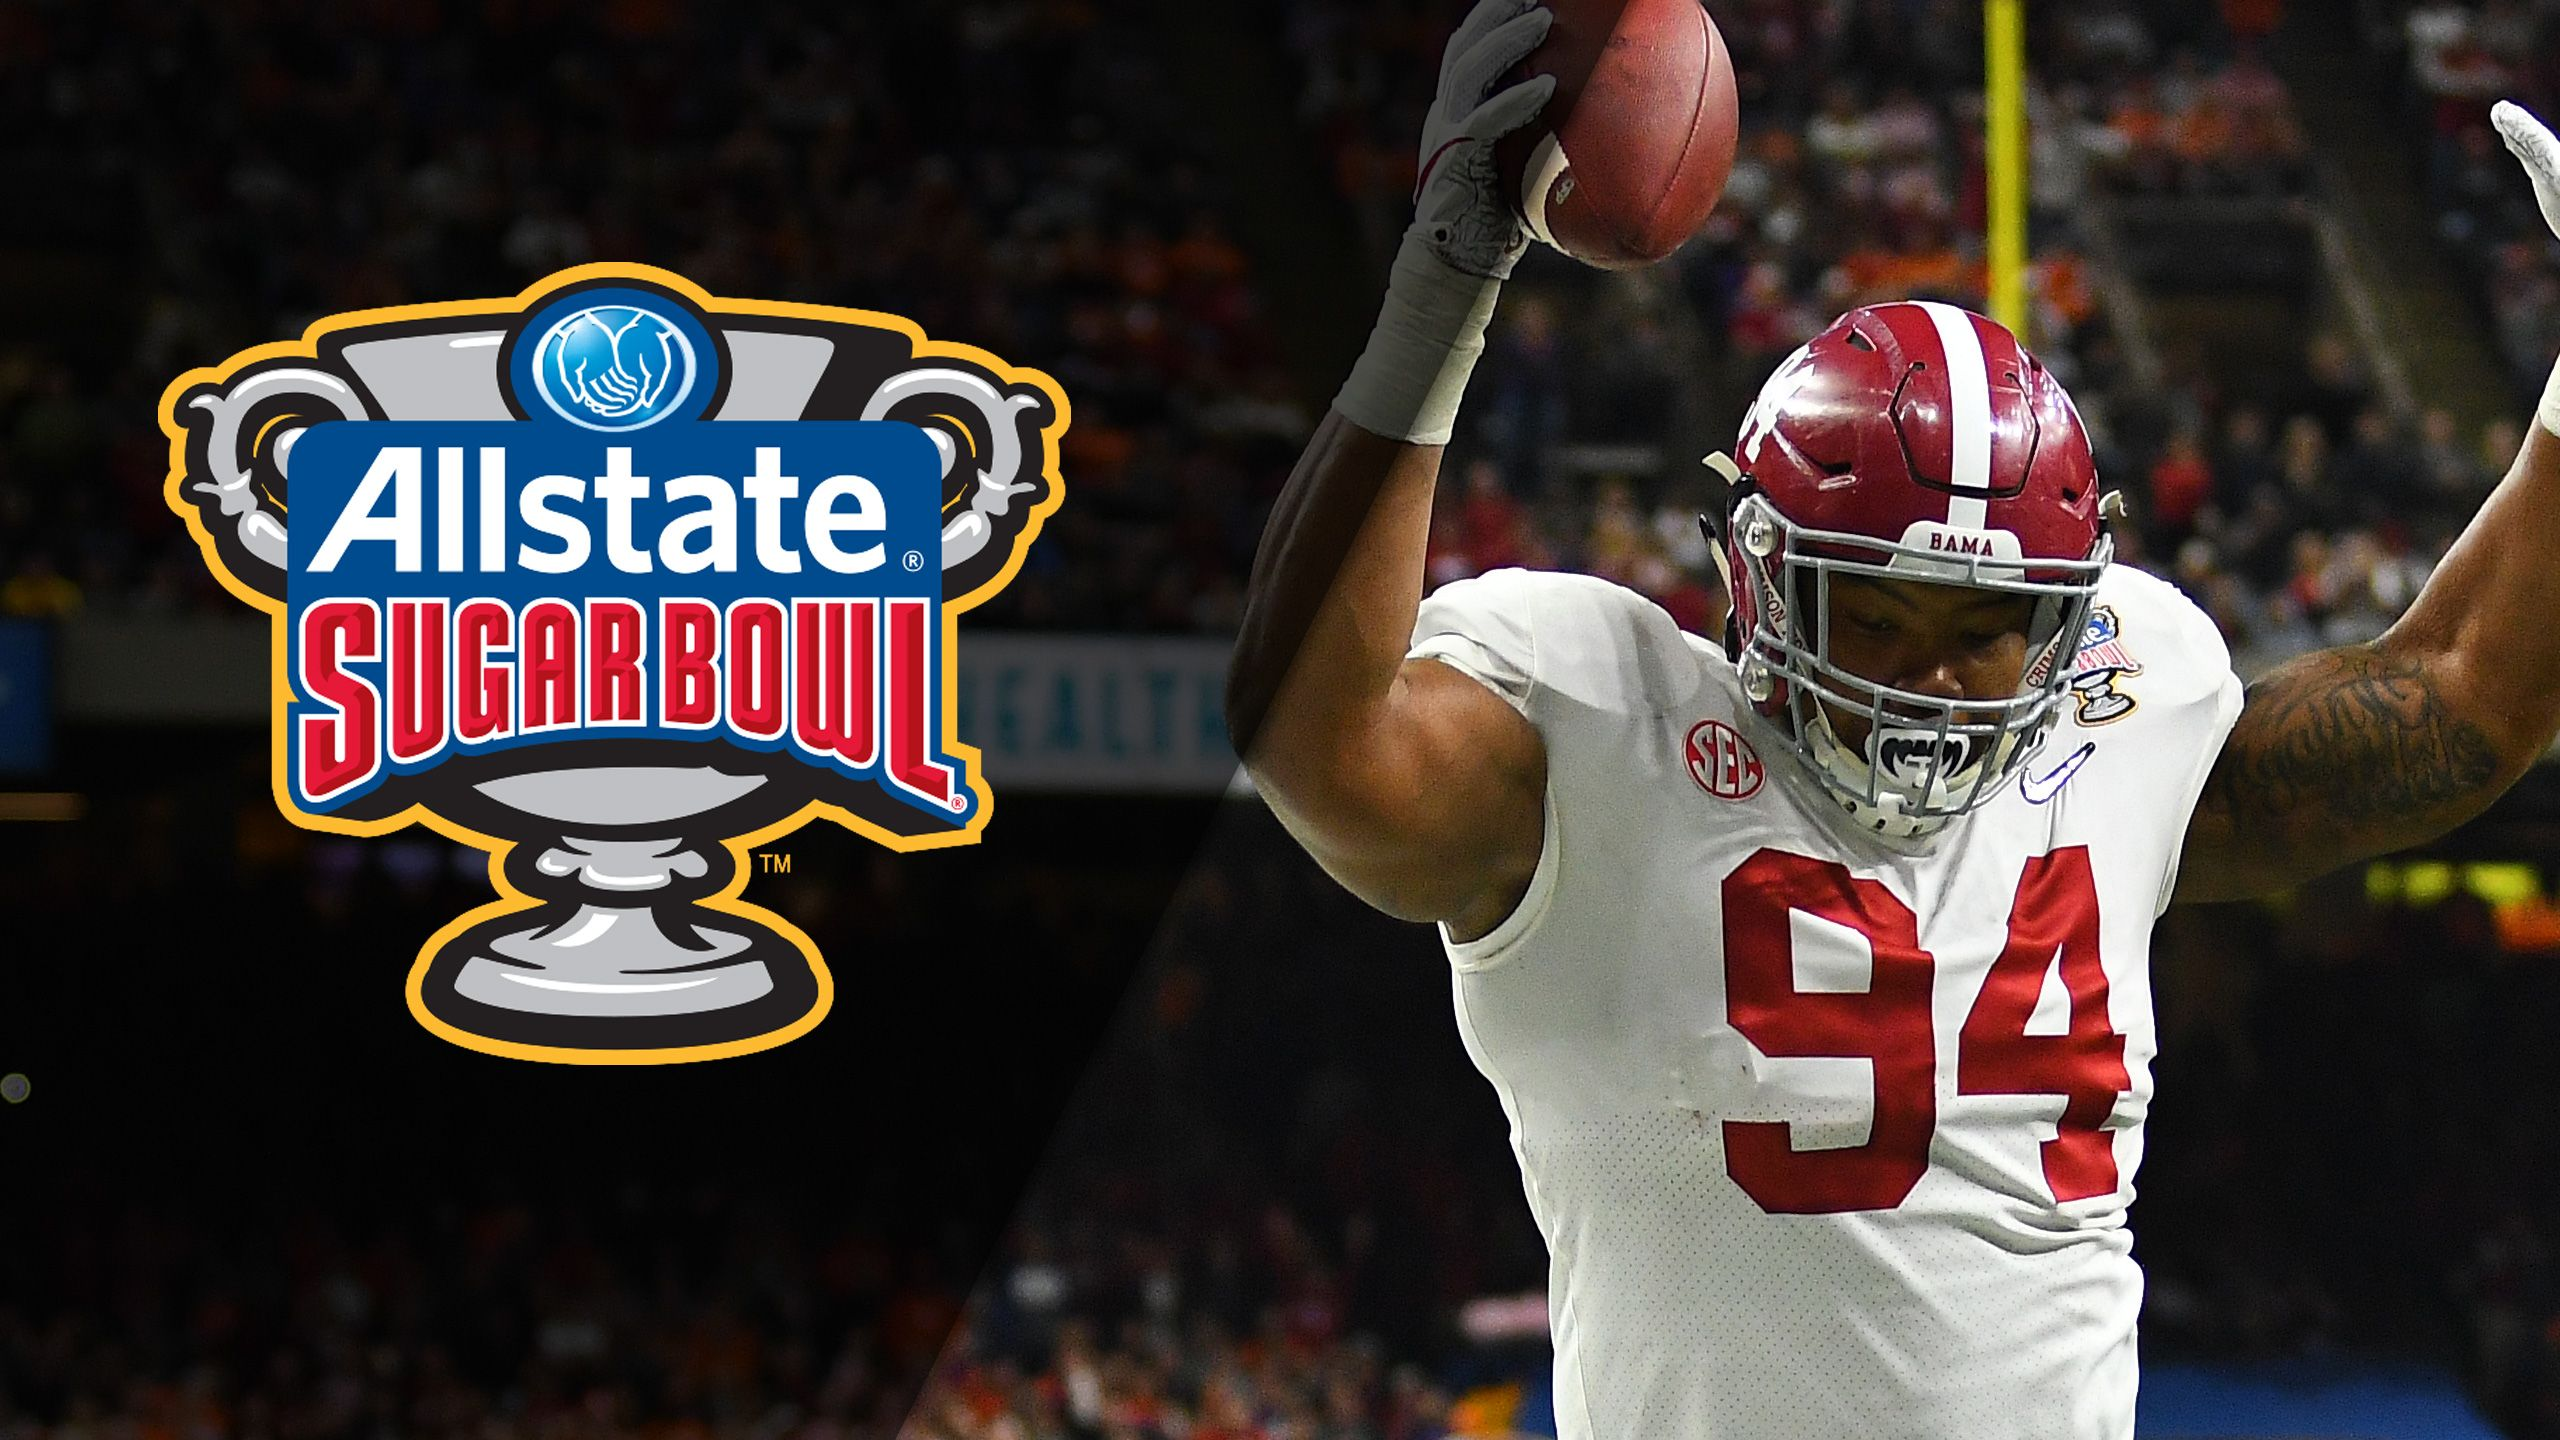 Alabama Hometown Radio: 2018 CFP Semifinal at the Allstate Sugar Bowl